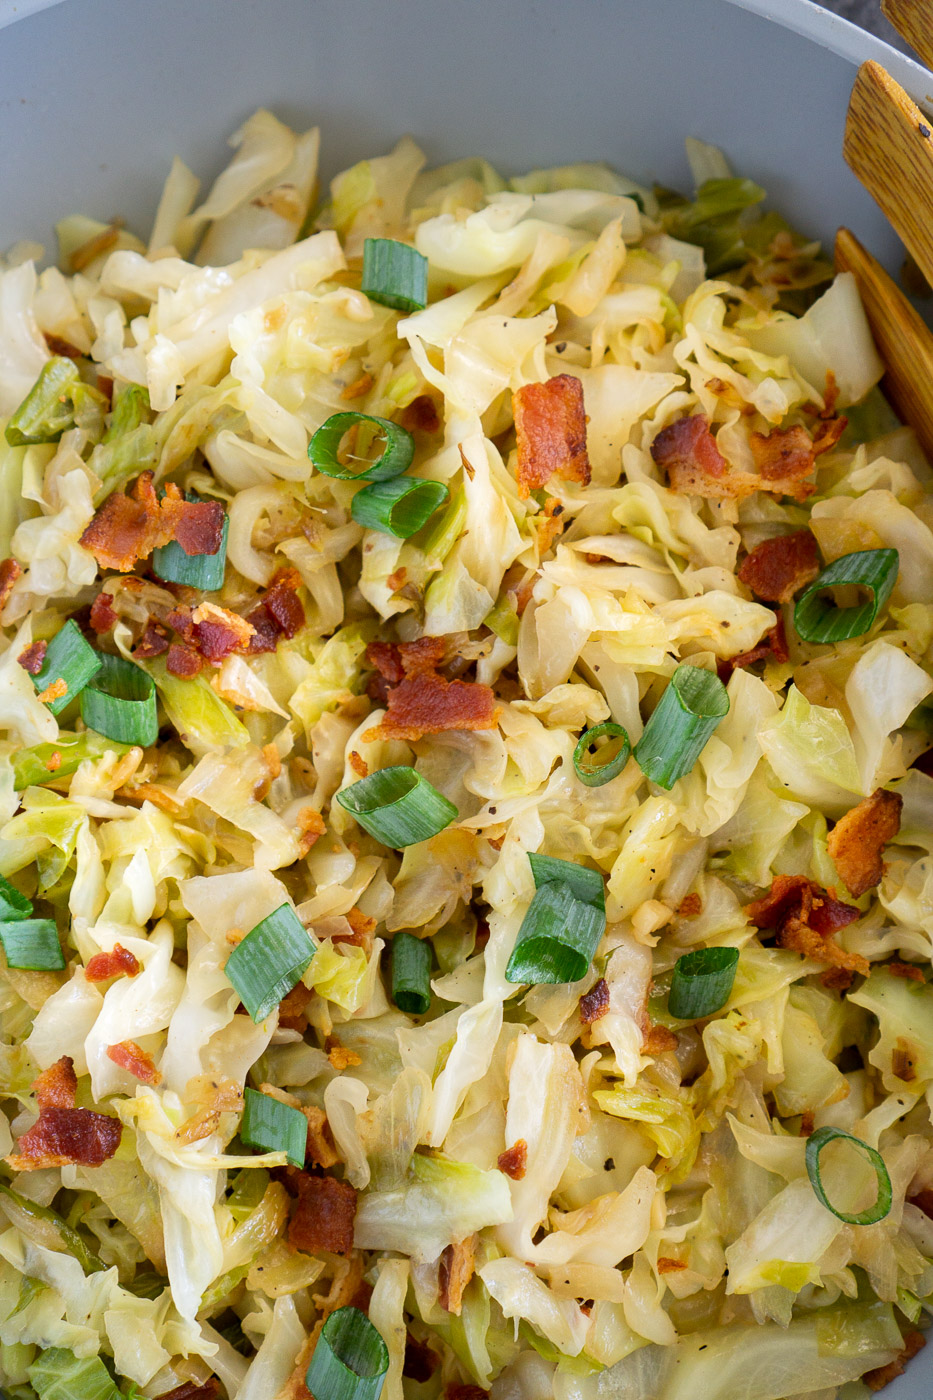 sauteed cabbage and bacon on a skillet - close up image